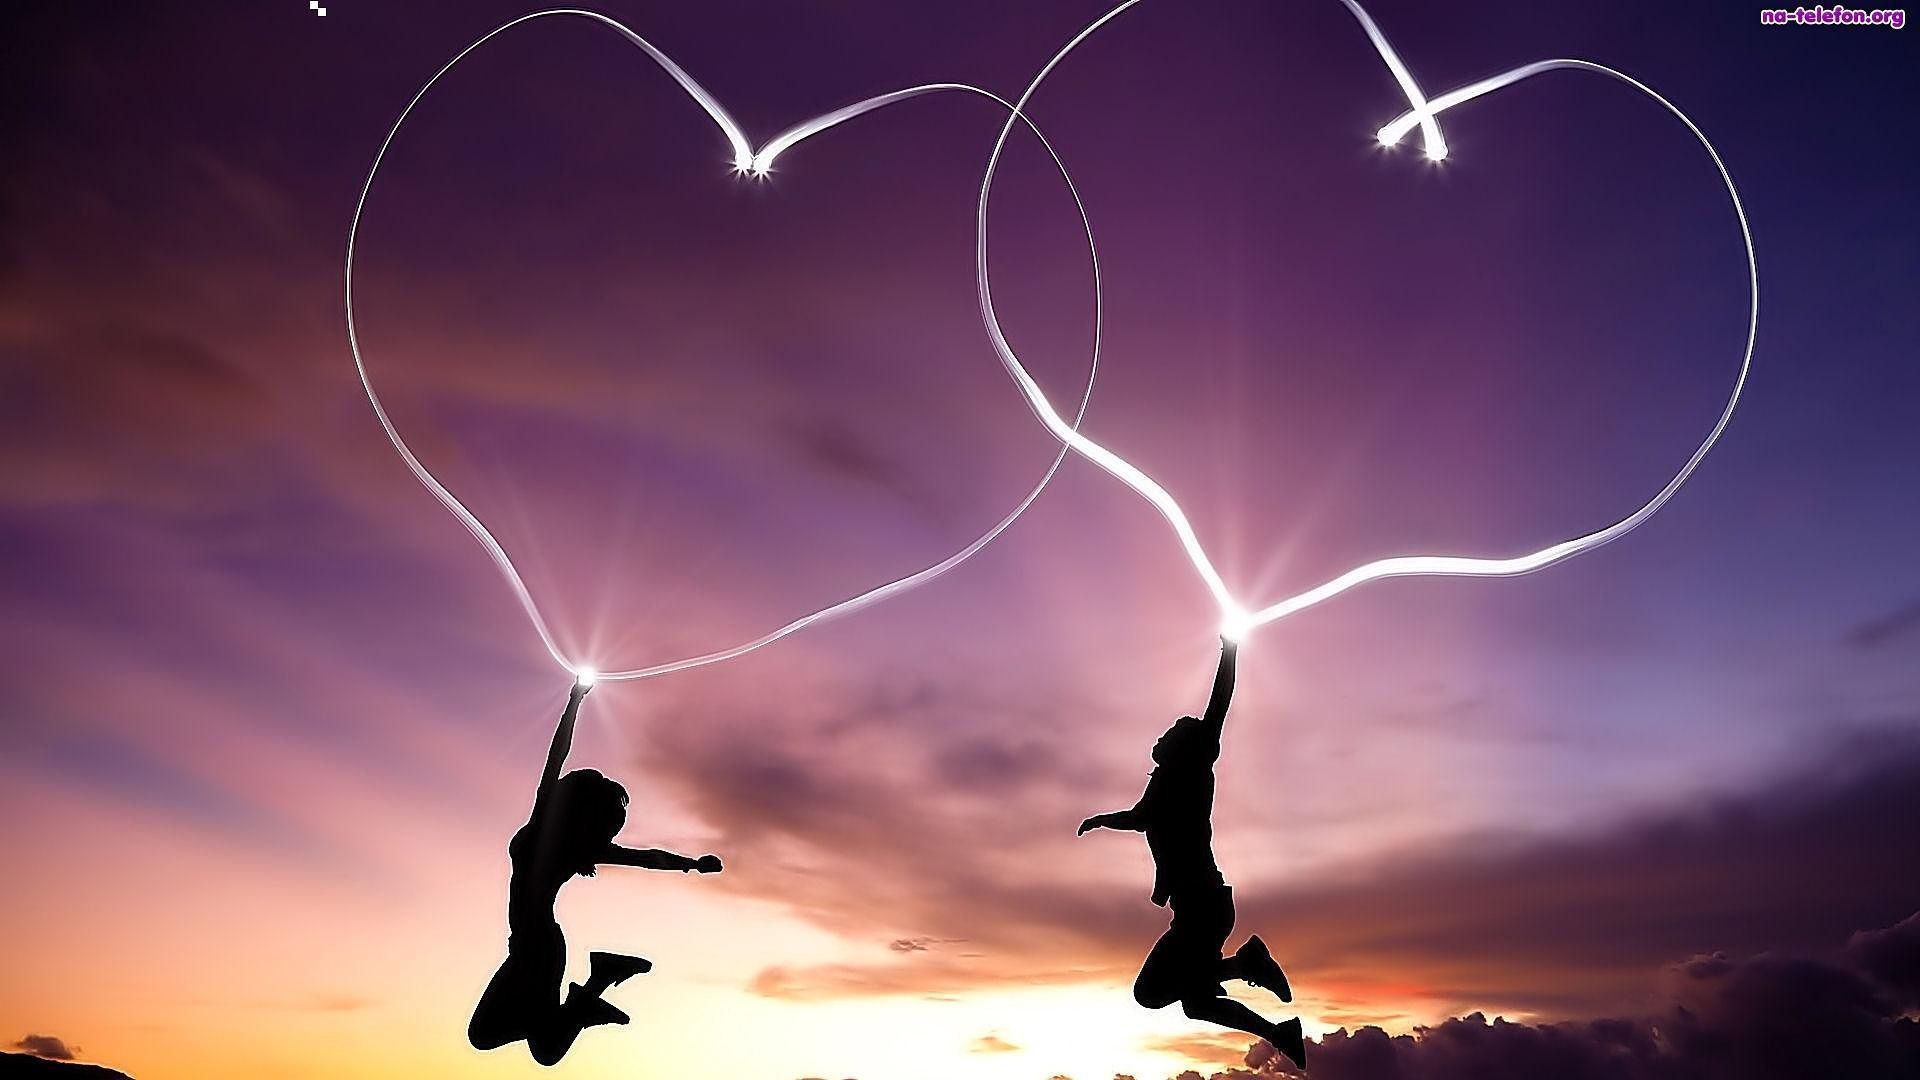 Image Of Love free background